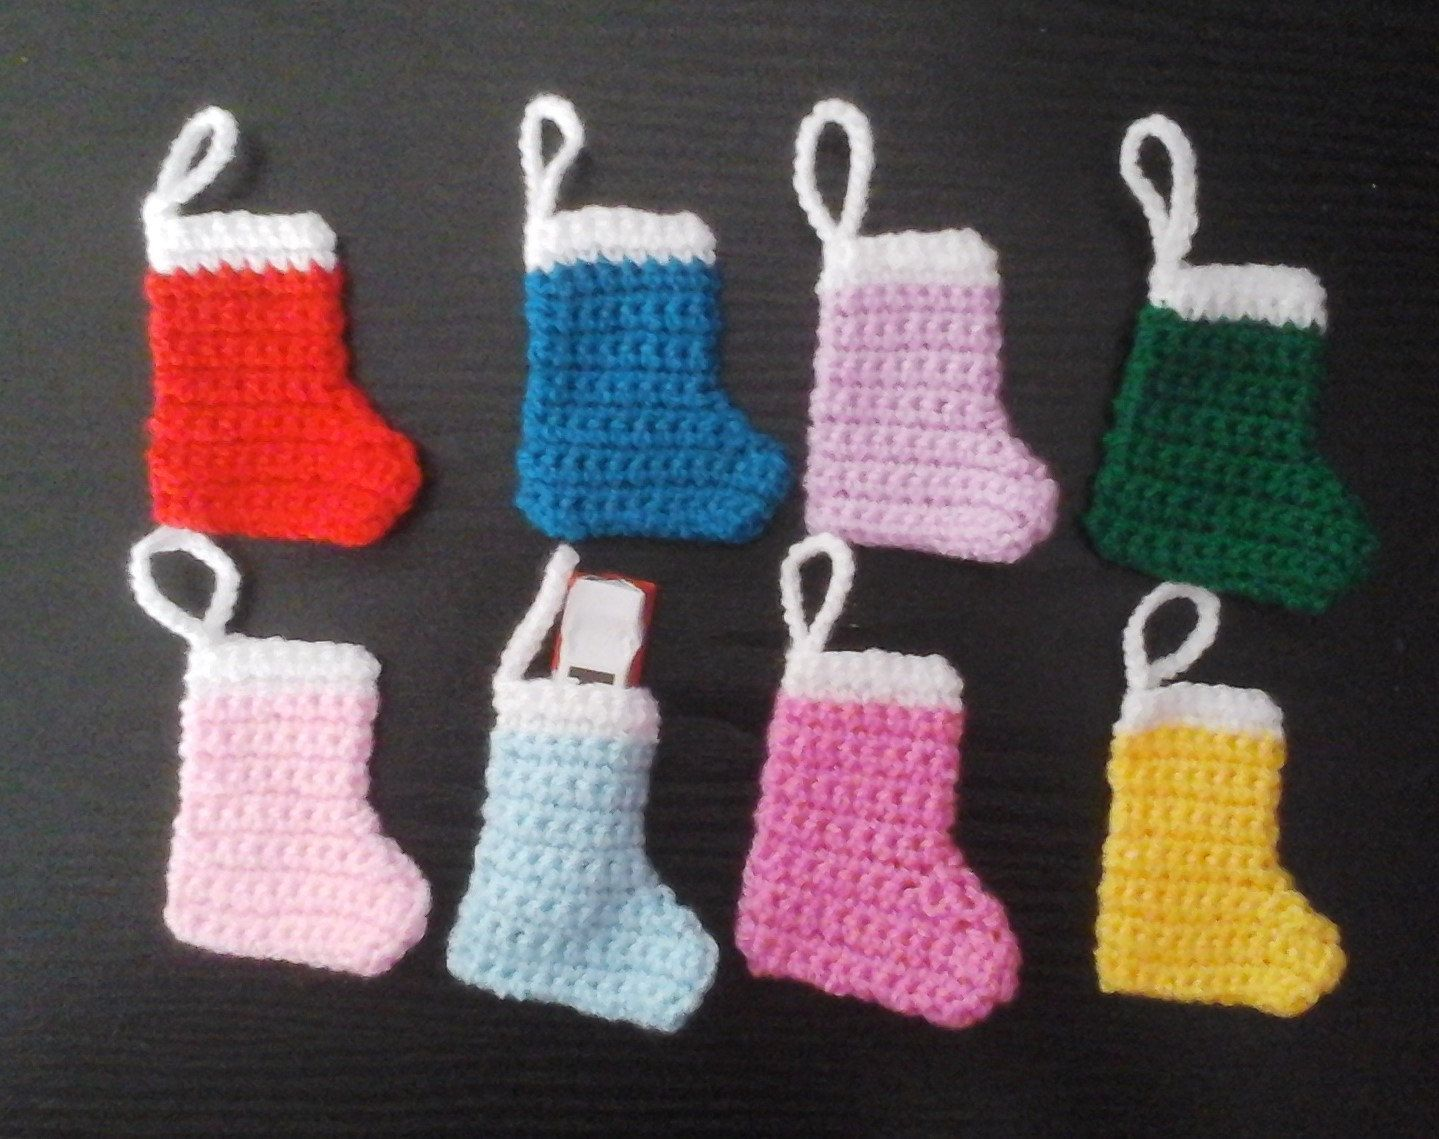 Set of 6 Mini Christmas stockings by BsBitsandBobs on Etsy